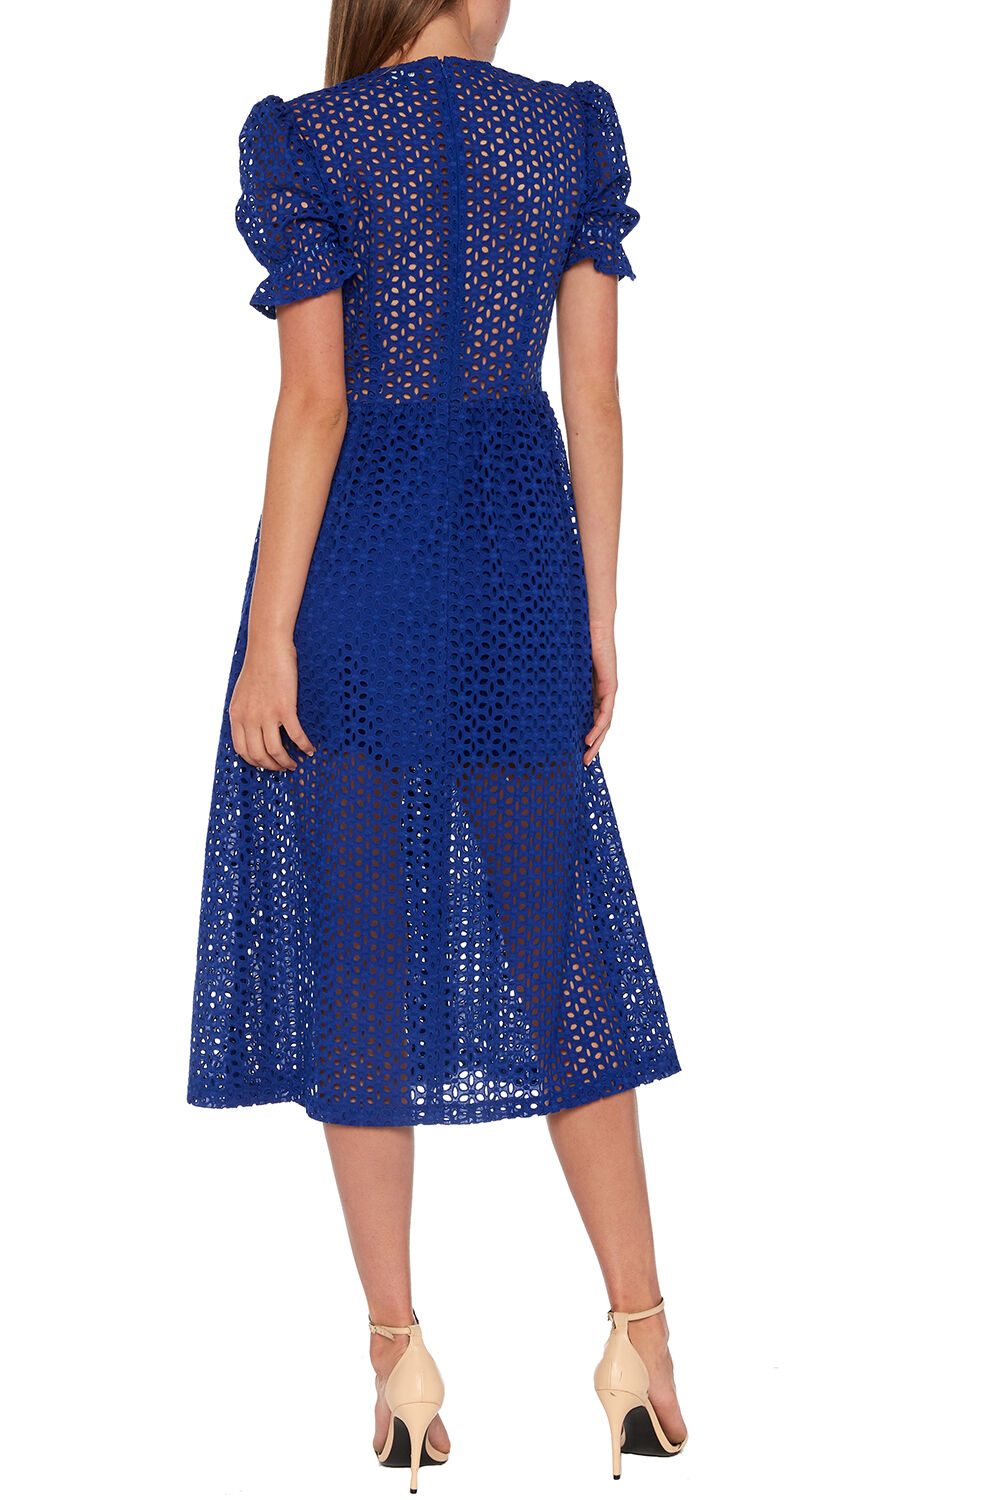 JORDAN LACE DRESS in colour SURF THE WEB